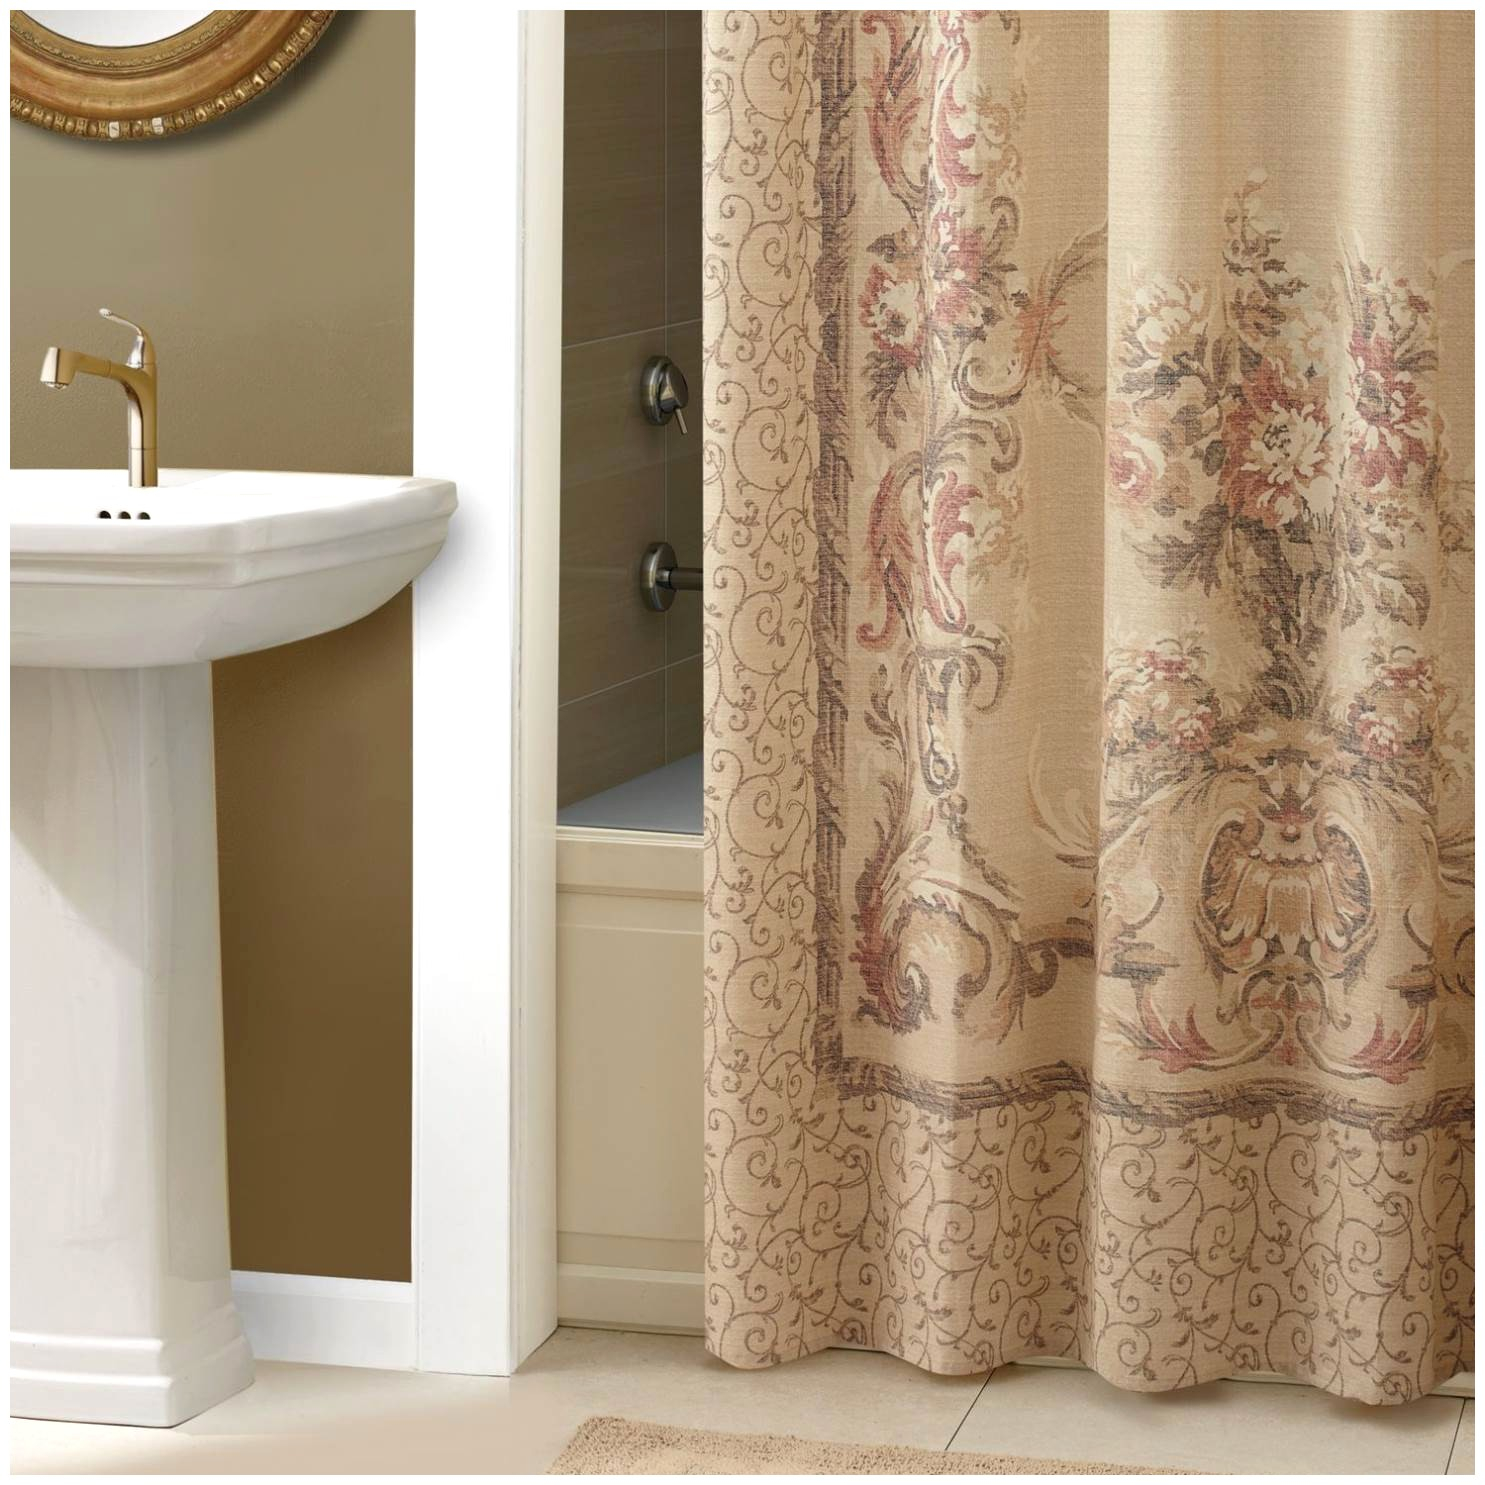 curtain champagne for and gold sequinedwer curtains window set sets bathroom log prestigue of awesome full images design home ideas shower setsbathroom accessories size